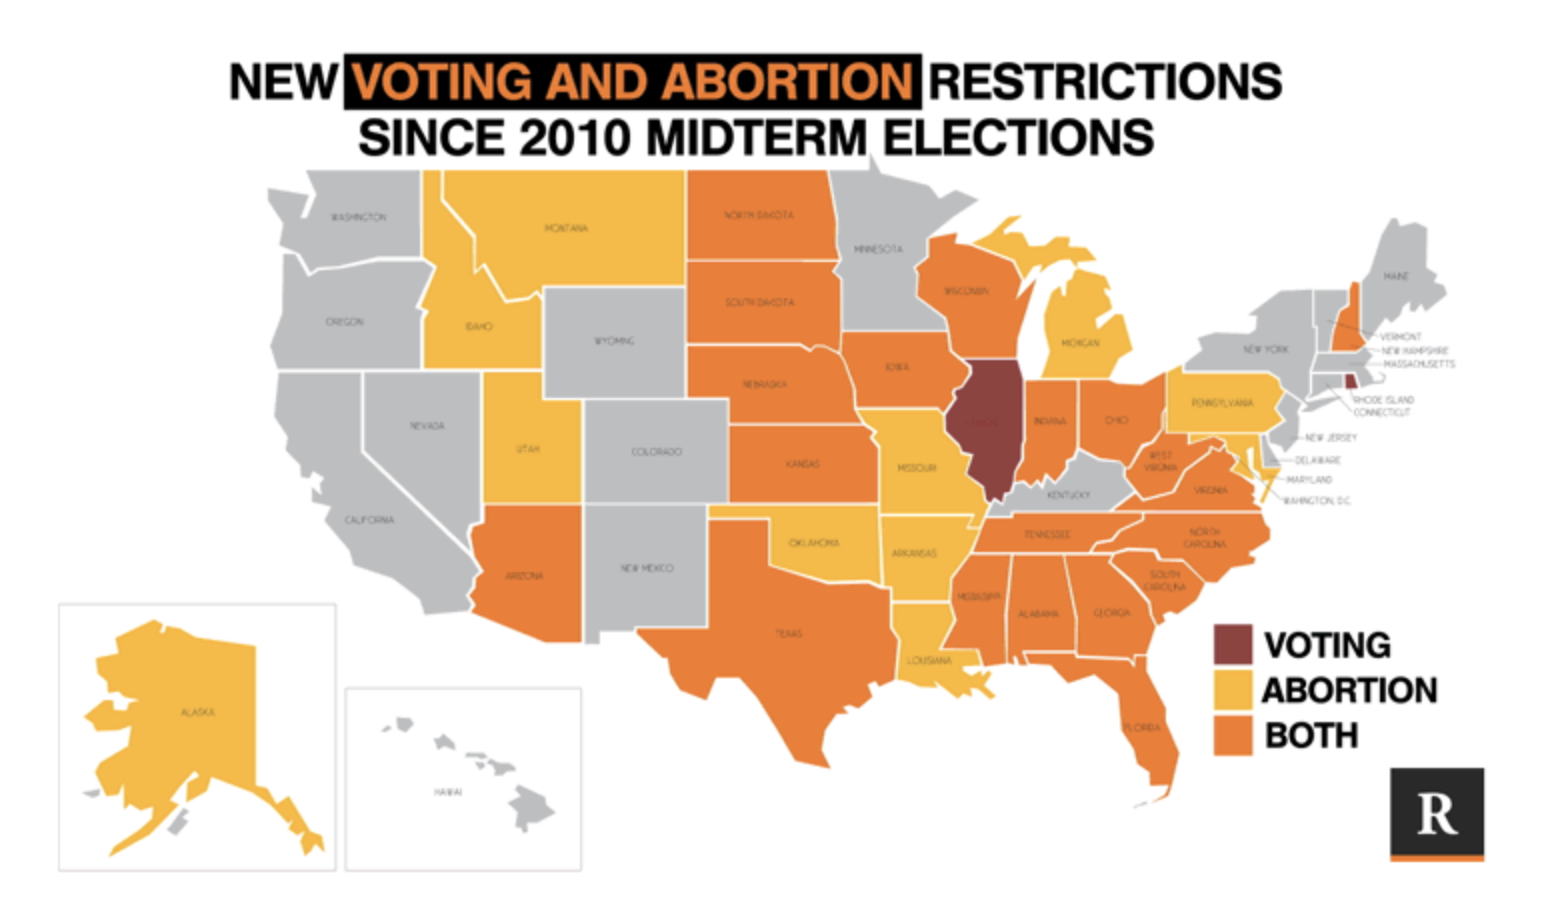 How Gerrymandering and Voter Suppression Paved the Way for Abortion Bans